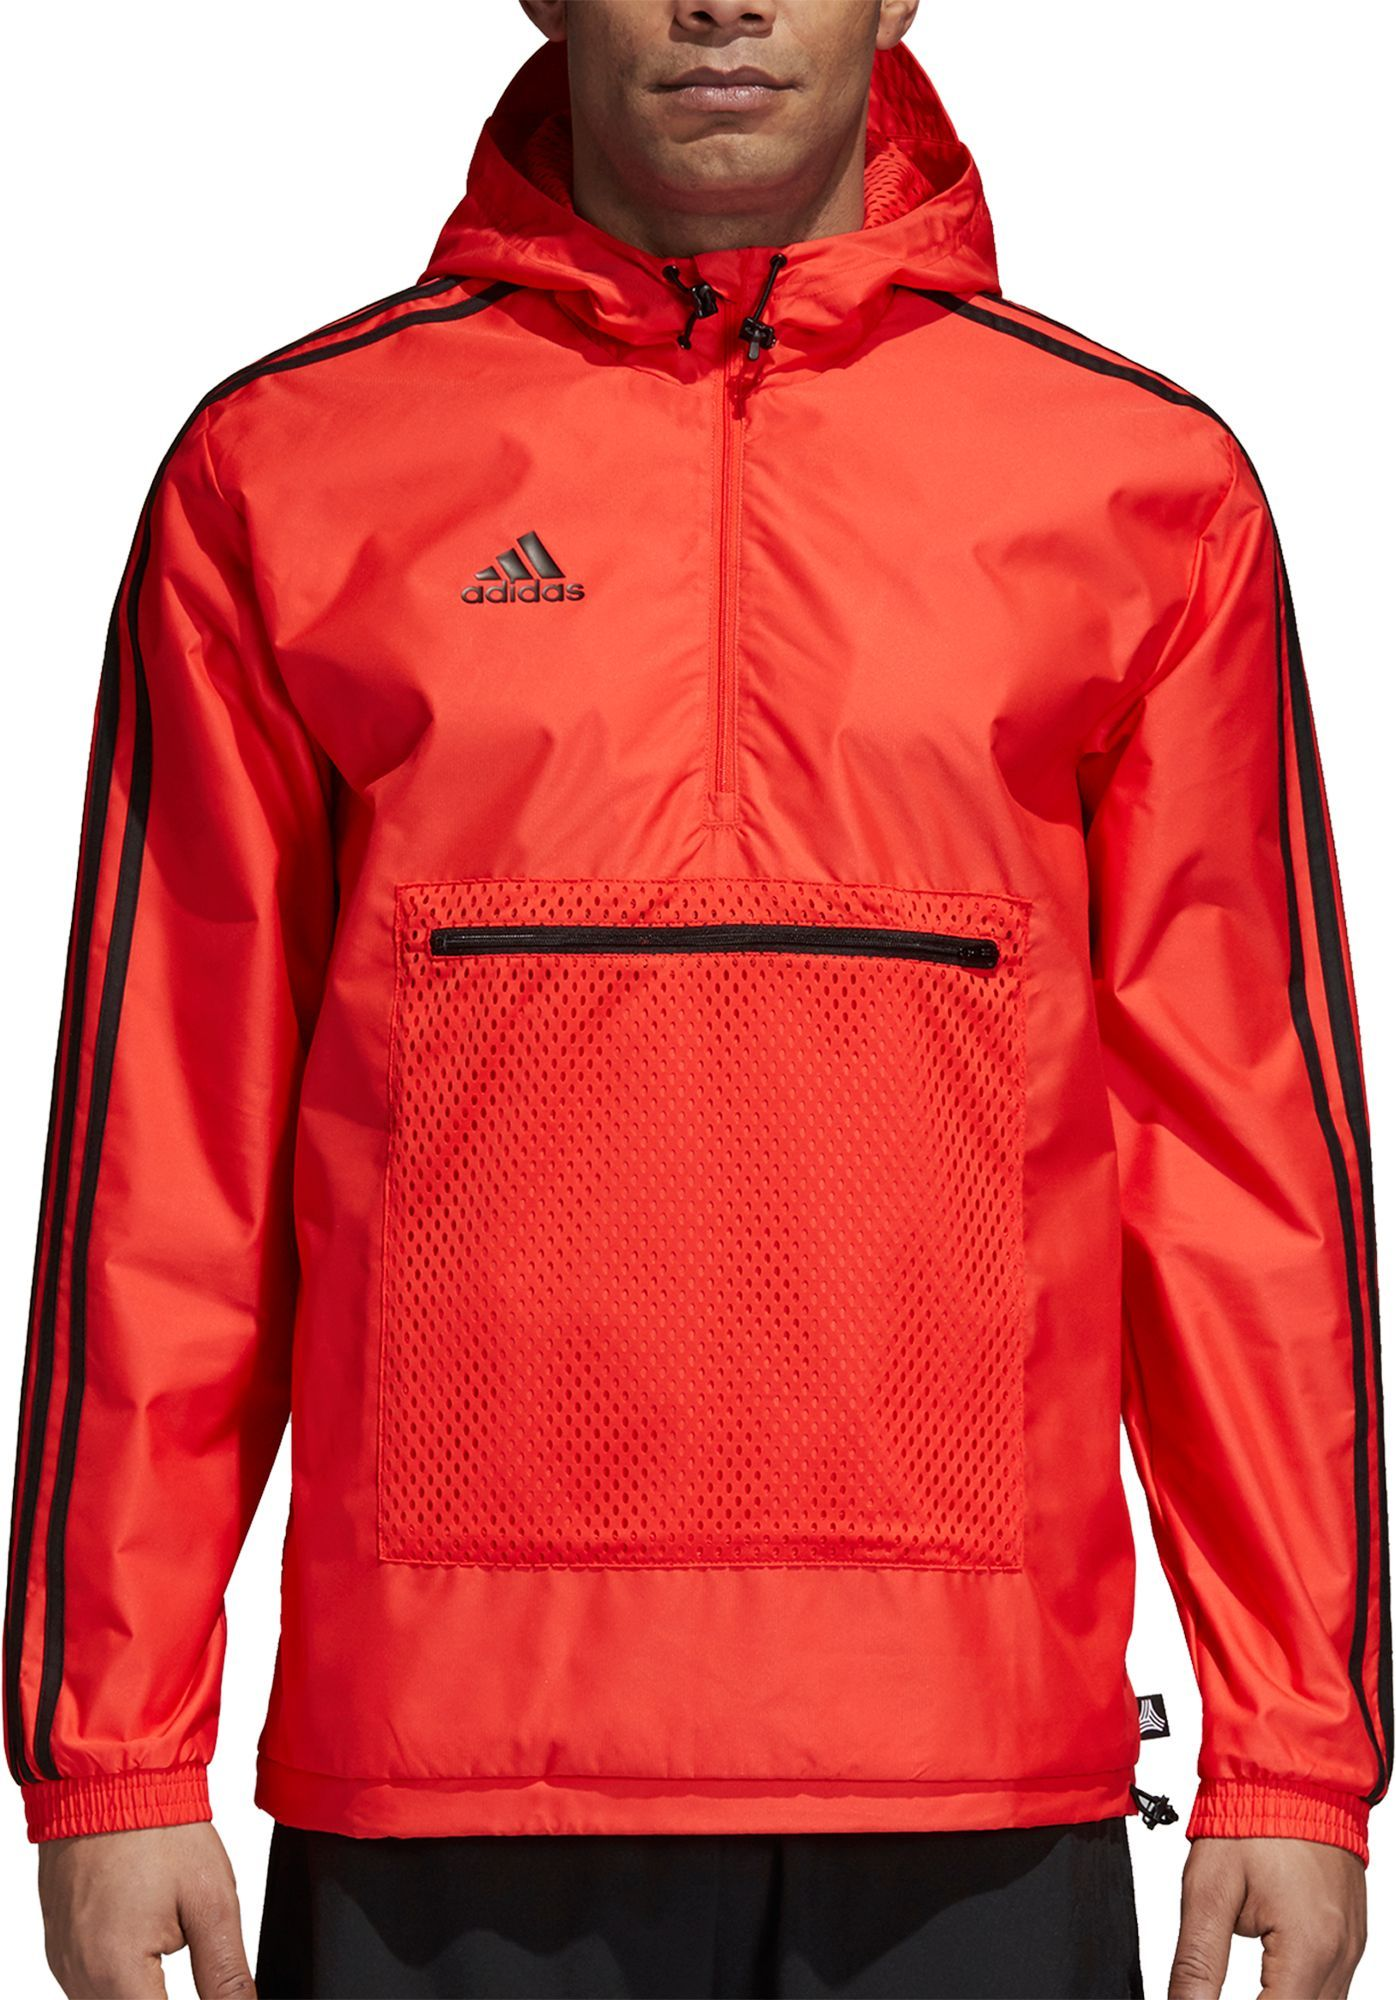 88d4e38a7640 adidas Men s Tango Half Zip Windbreaker Jacket in 2018